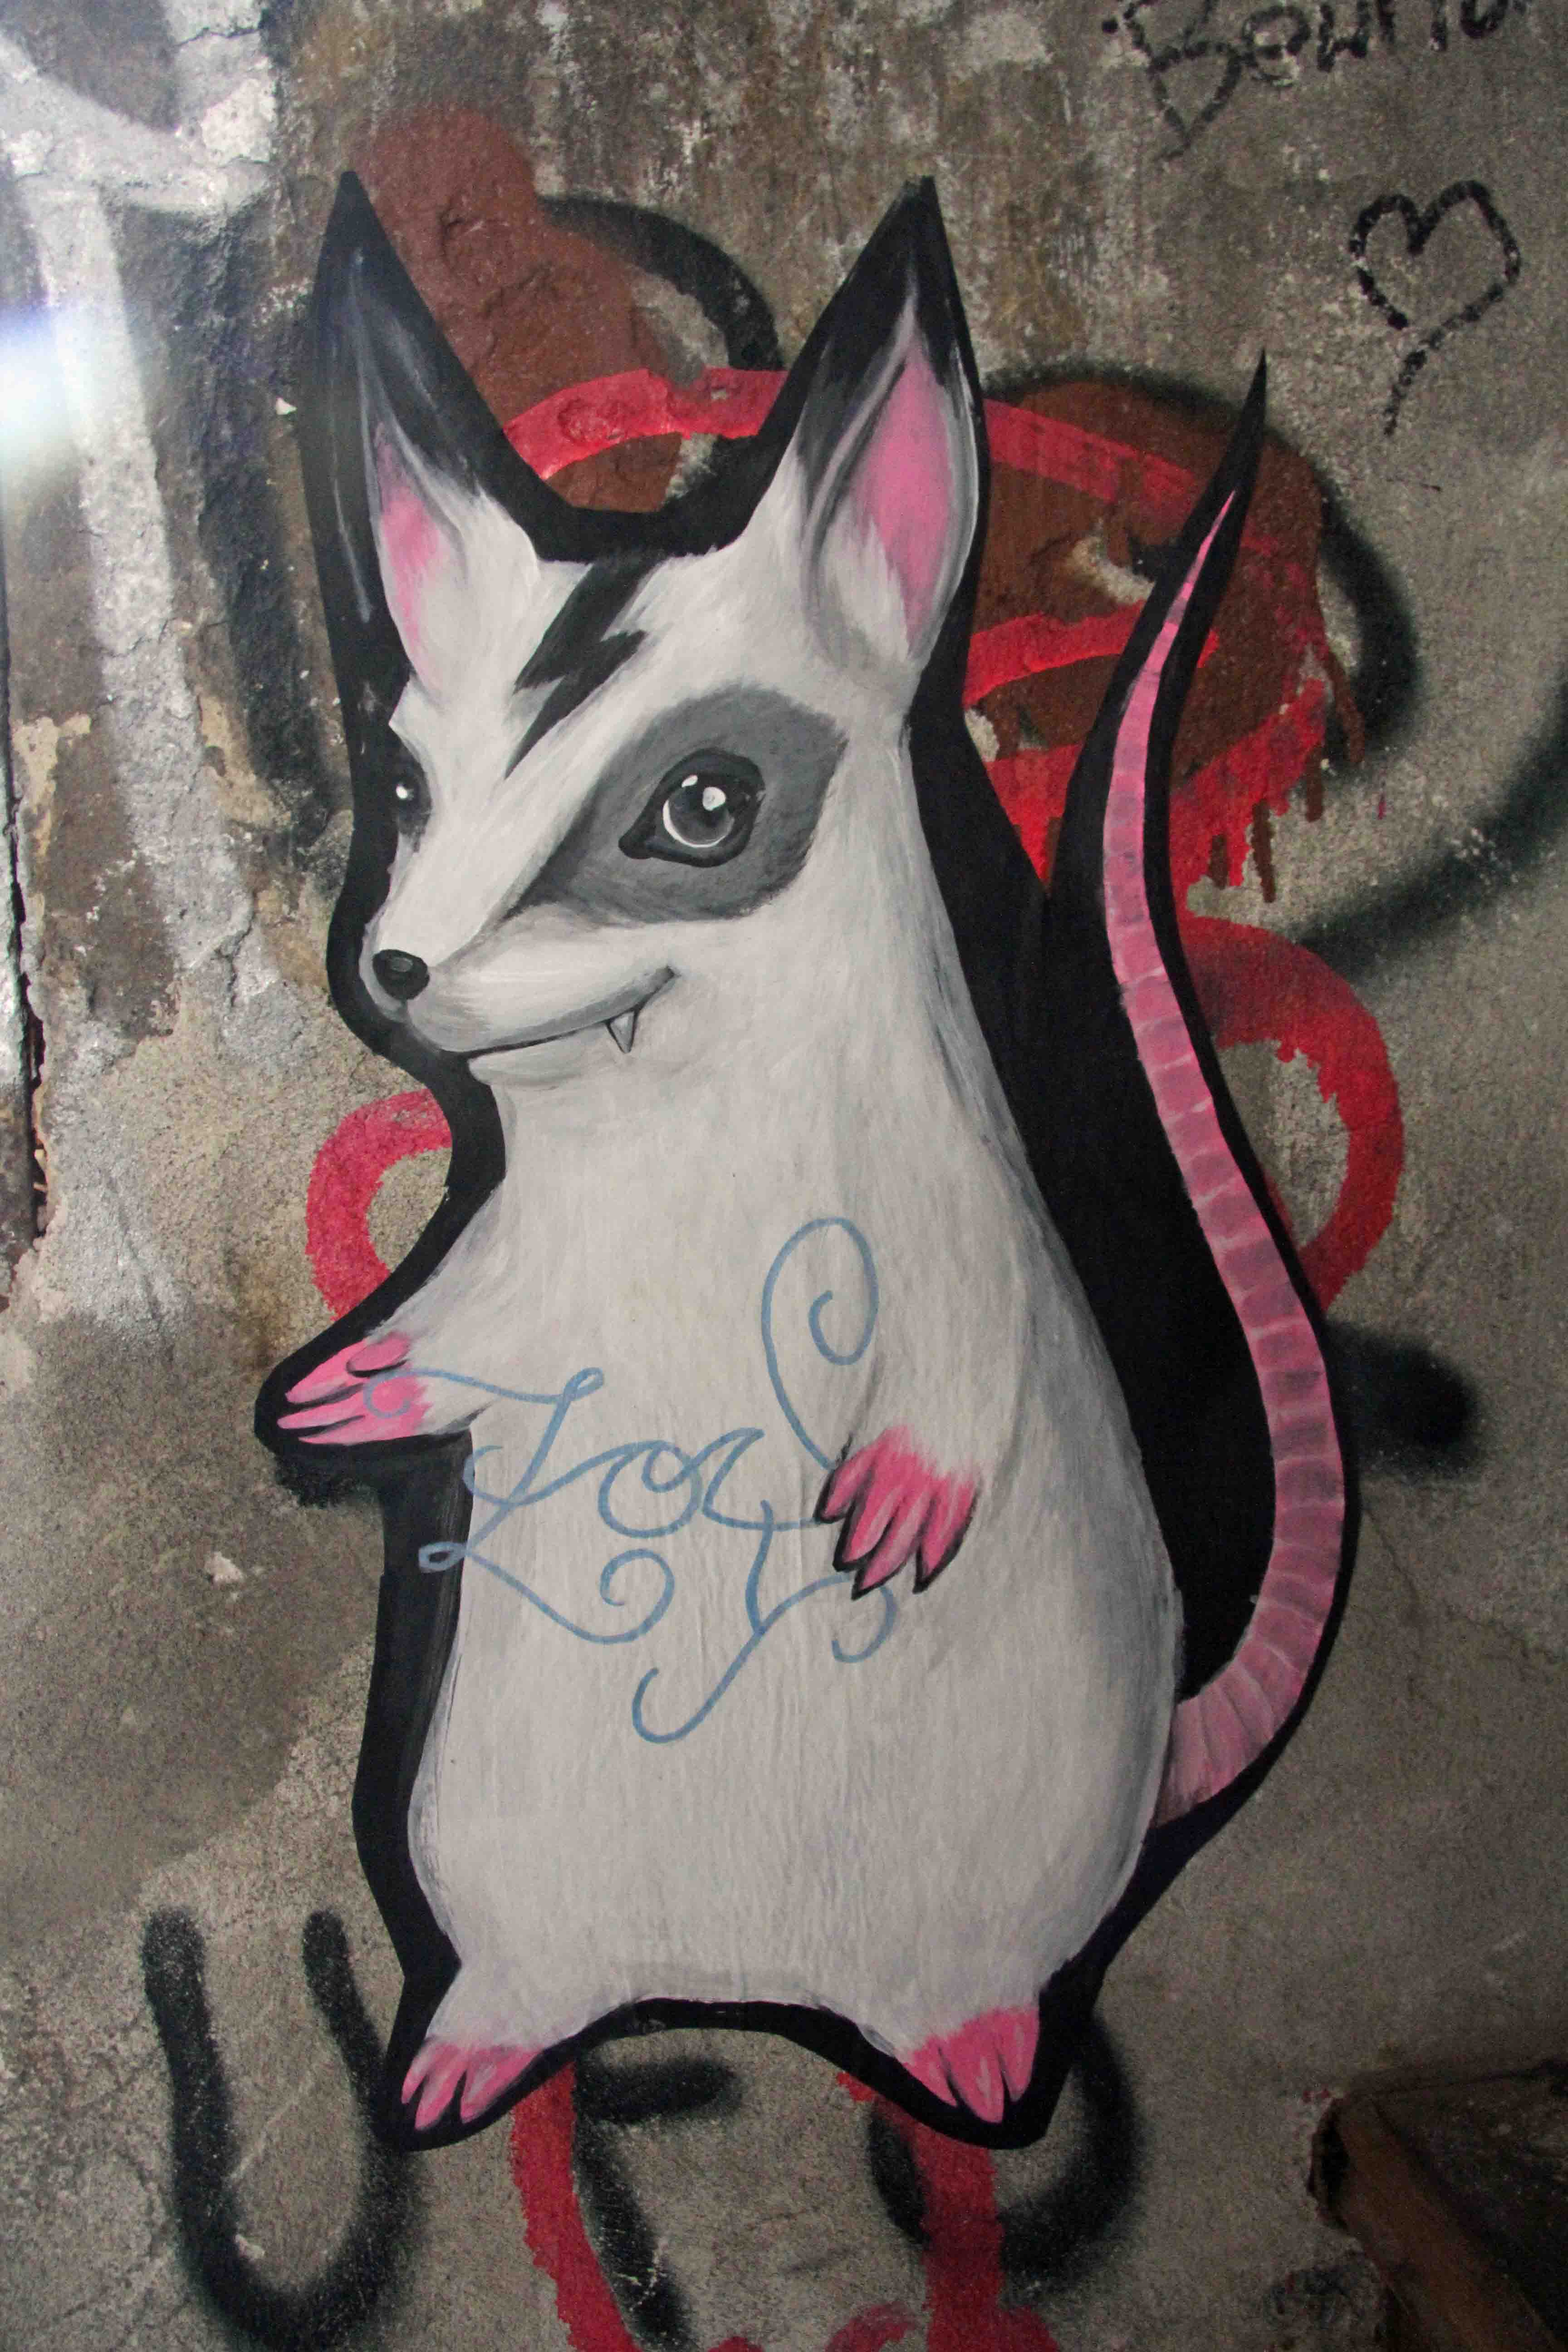 Pink Tail - Street Art by Unknown Artist in Berlin